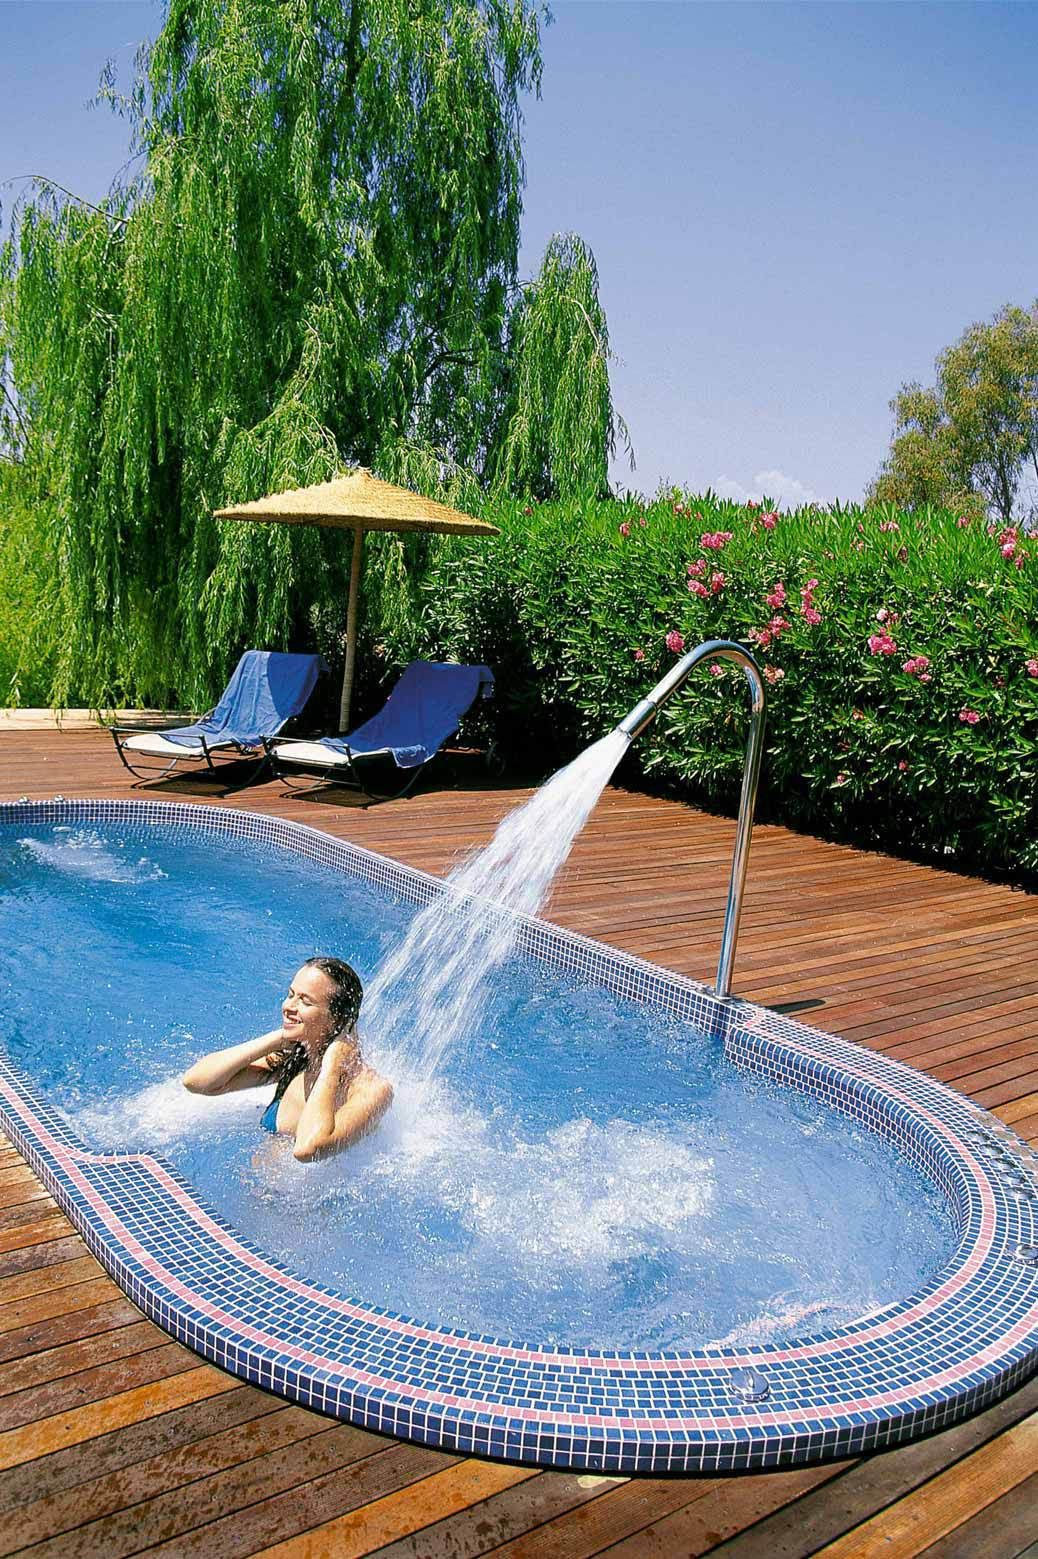 spa de nage mosa qe clair azur piscine pinterest swimming pools and swimming. Black Bedroom Furniture Sets. Home Design Ideas